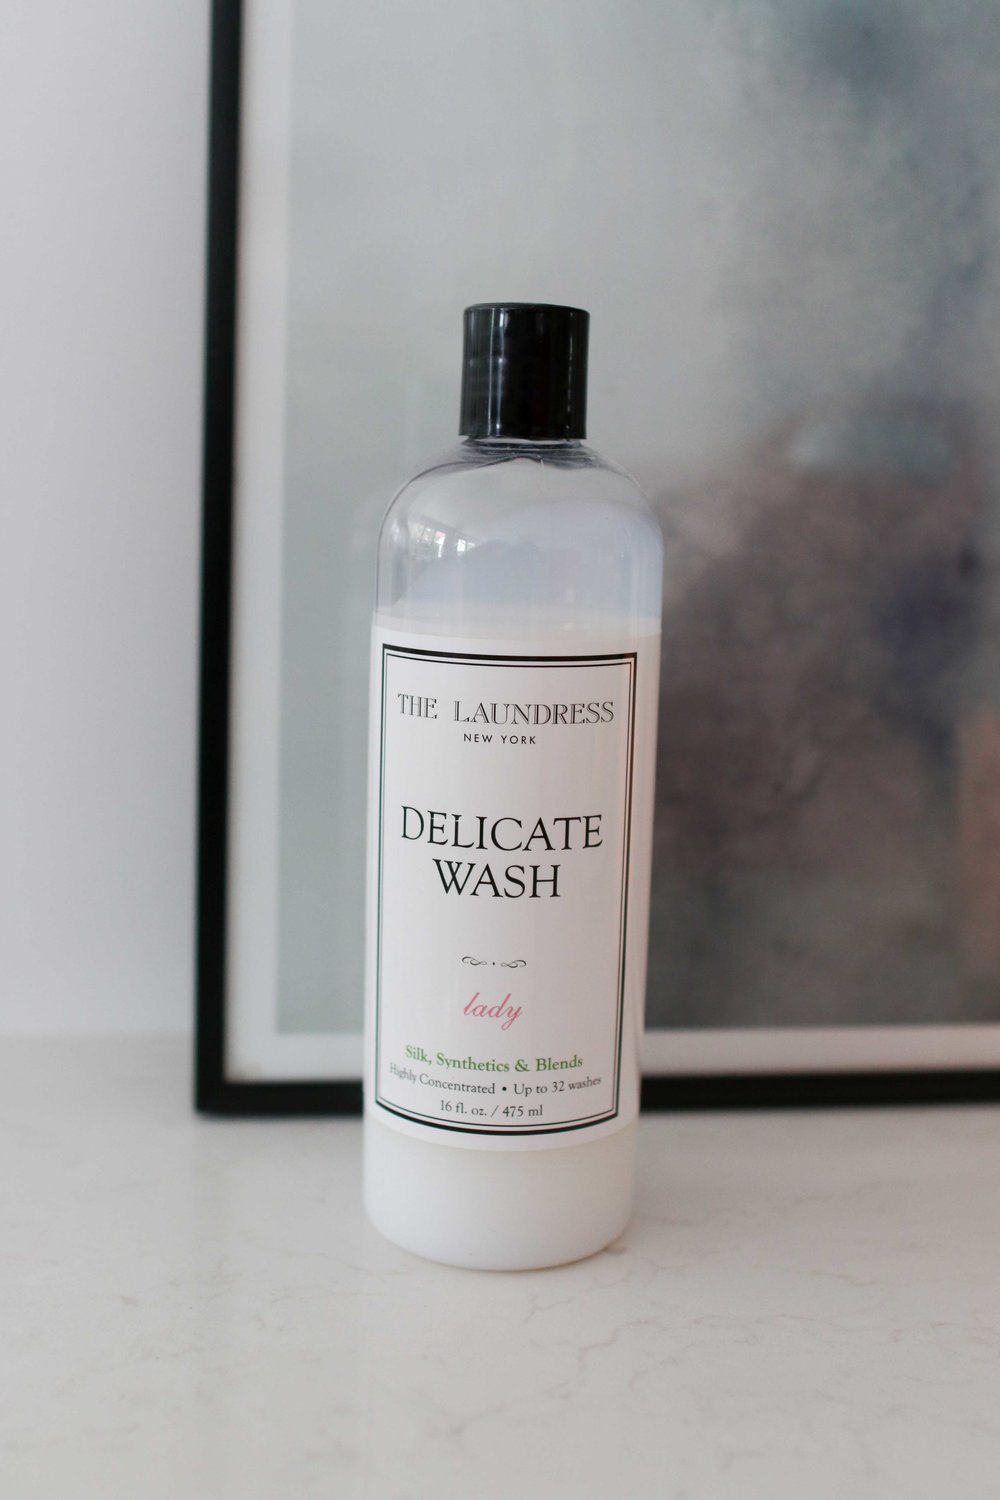 I love - I love The Laundress' Delicate Wash for my silks. It is a bit more expensive than a regular washing liquid, however for my special pieces it is worth the splurge (you can buy it online straight from The Laundress in NYC or try Peters of Kensington or The Butlers Trading Company to purchase locally). I poor the liquid over the top of the clothes (rather than into any liquid dispenser built into the machine).